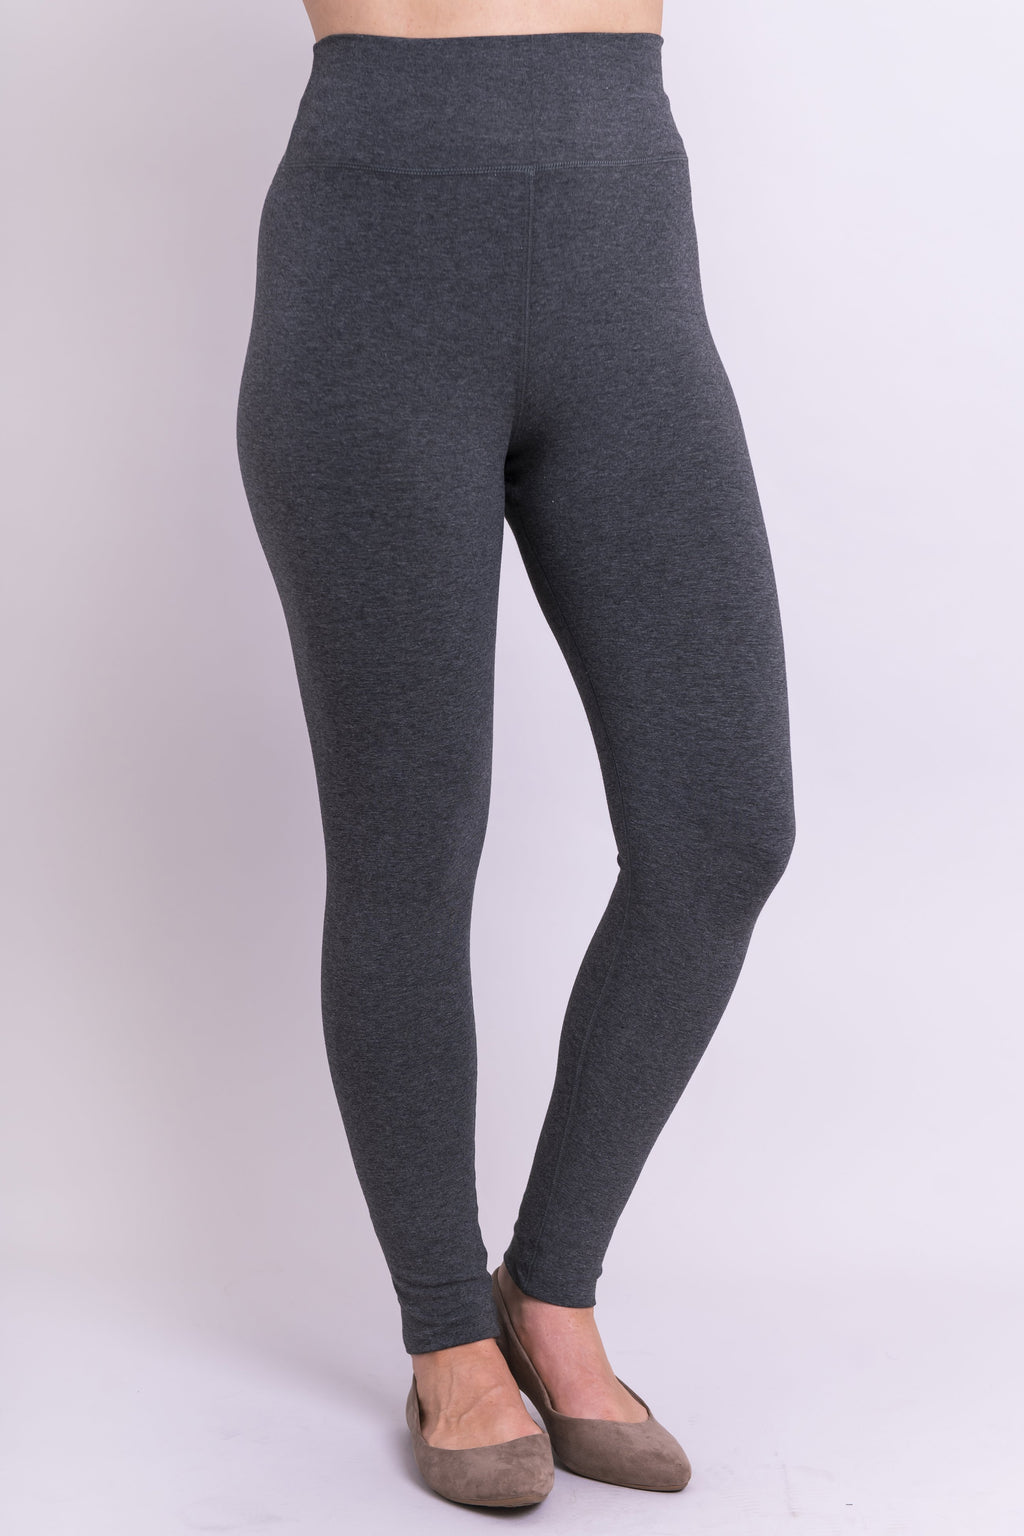 Riley Legging, Graphite, Bamboo - Blue Sky Clothing Co